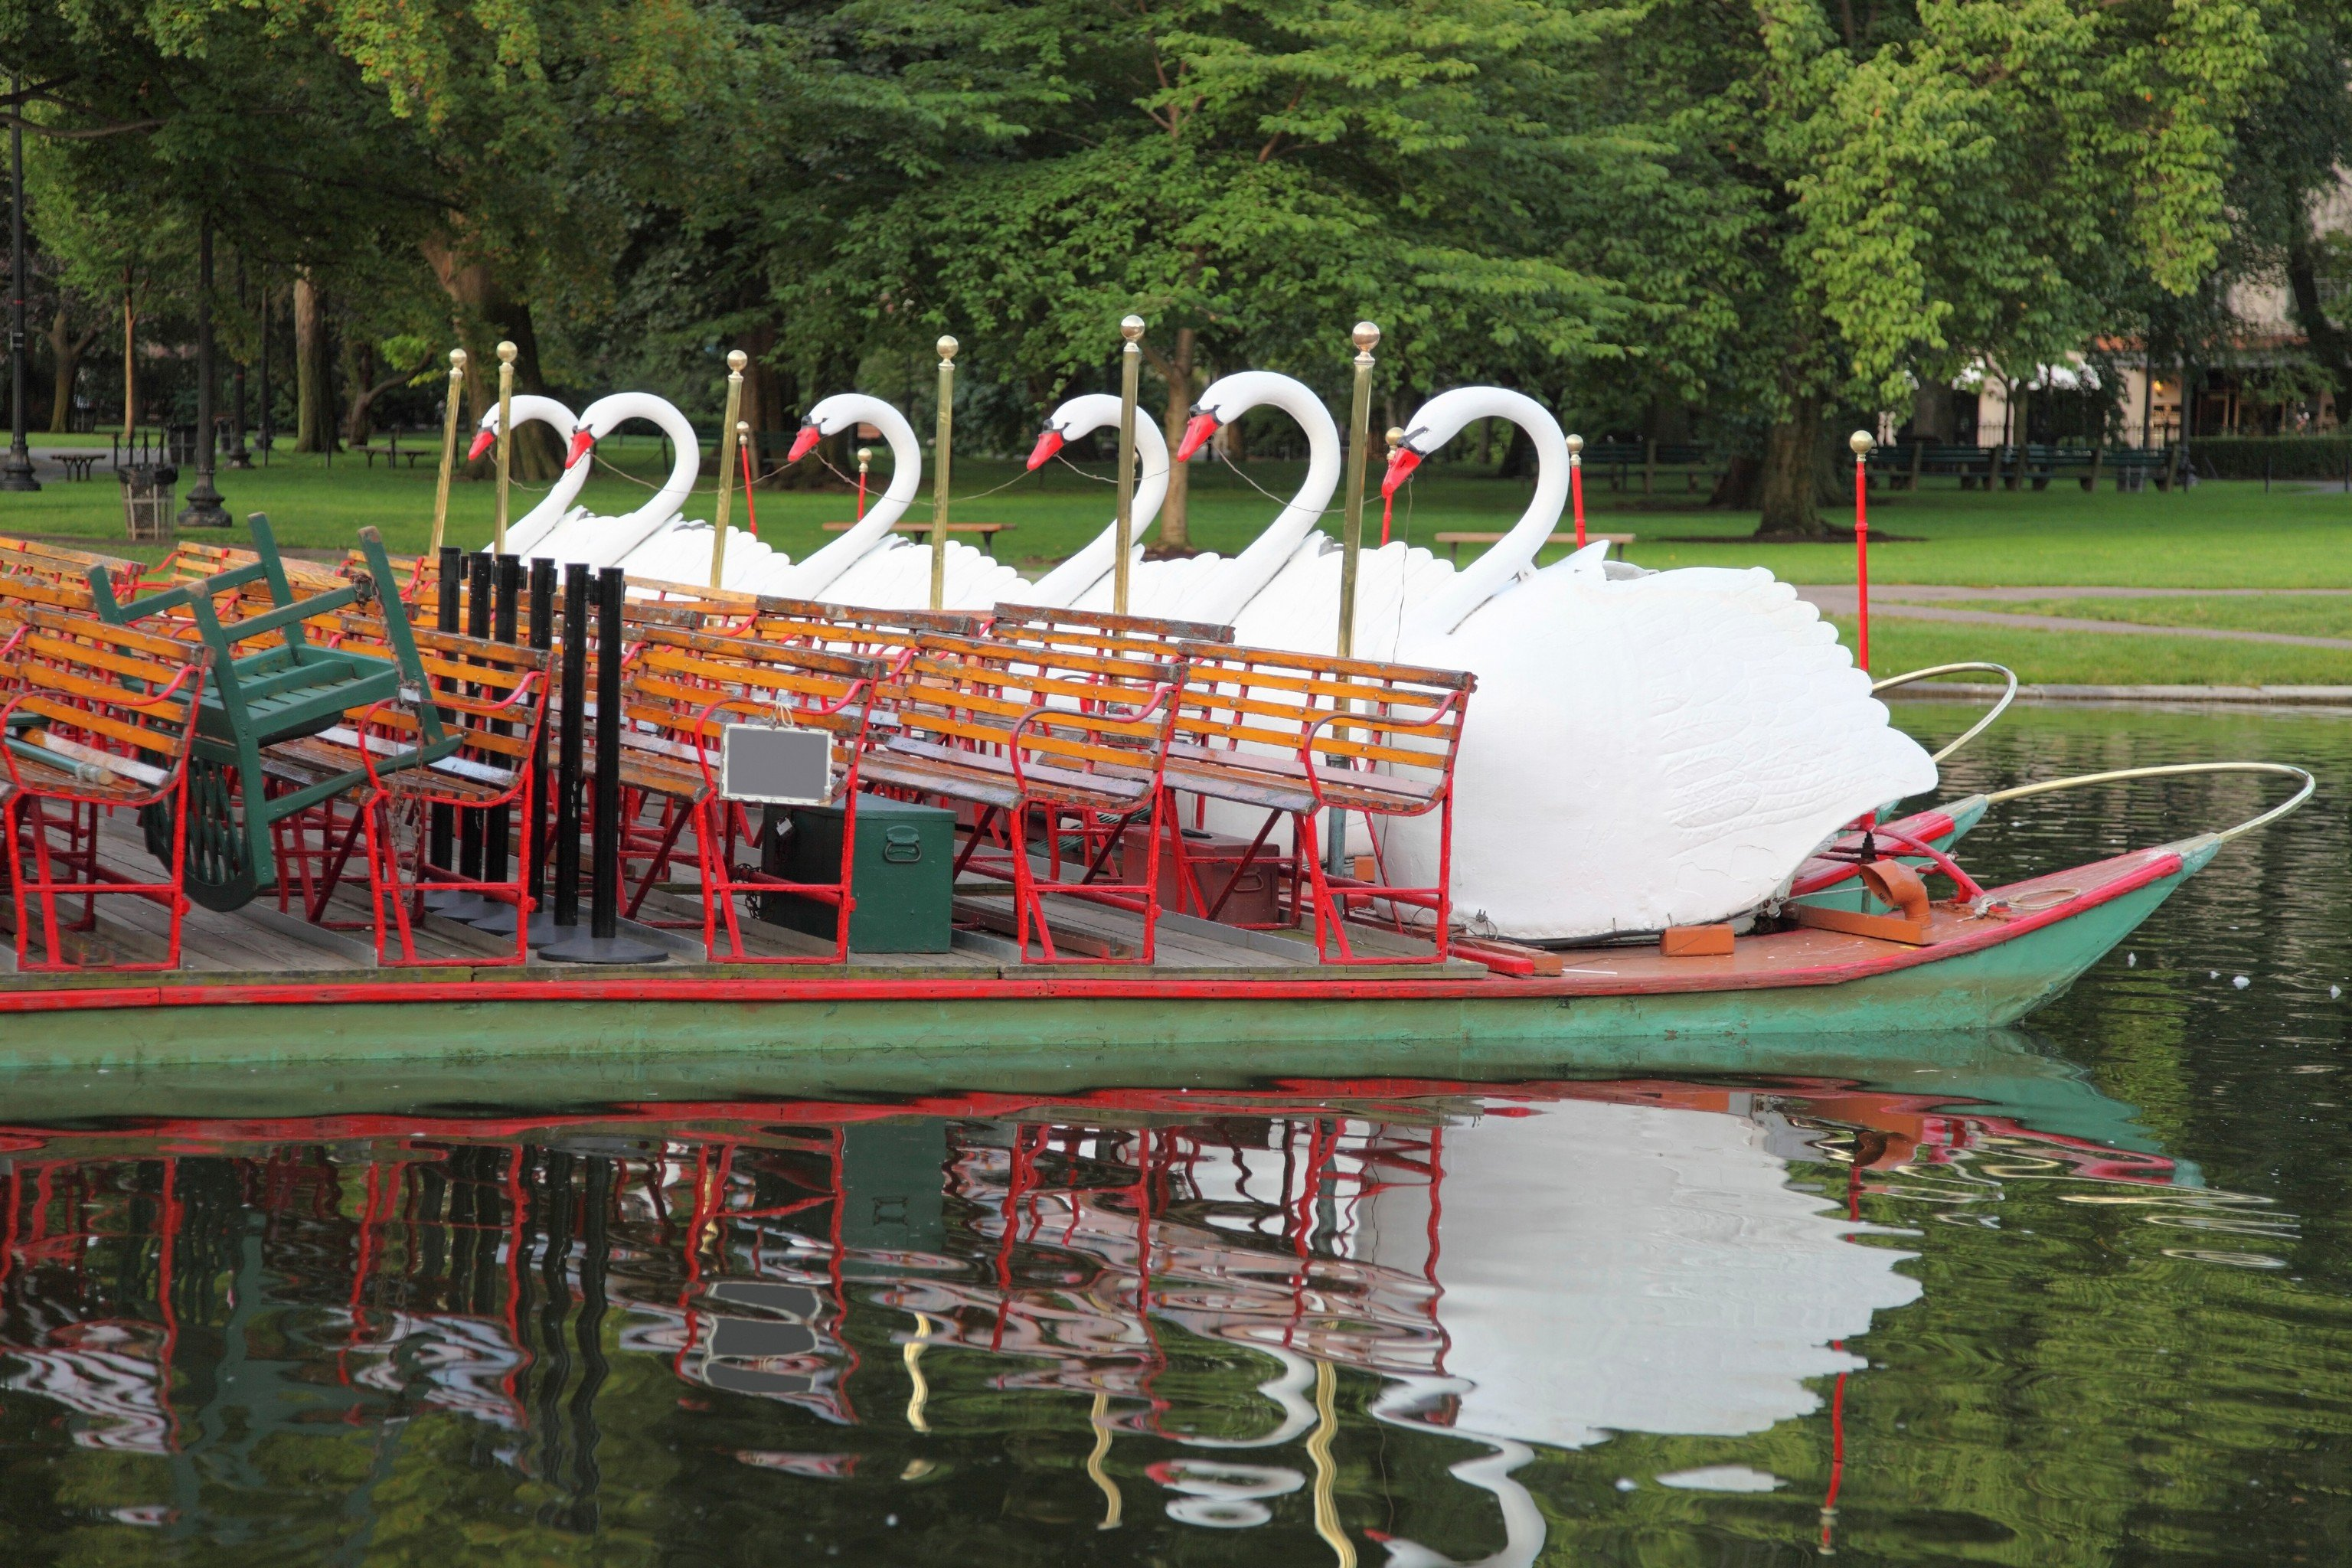 Budget tree water outdoor Boat River amusement park park boating Lake Playground waterway amusement ride vehicle outdoor play equipment